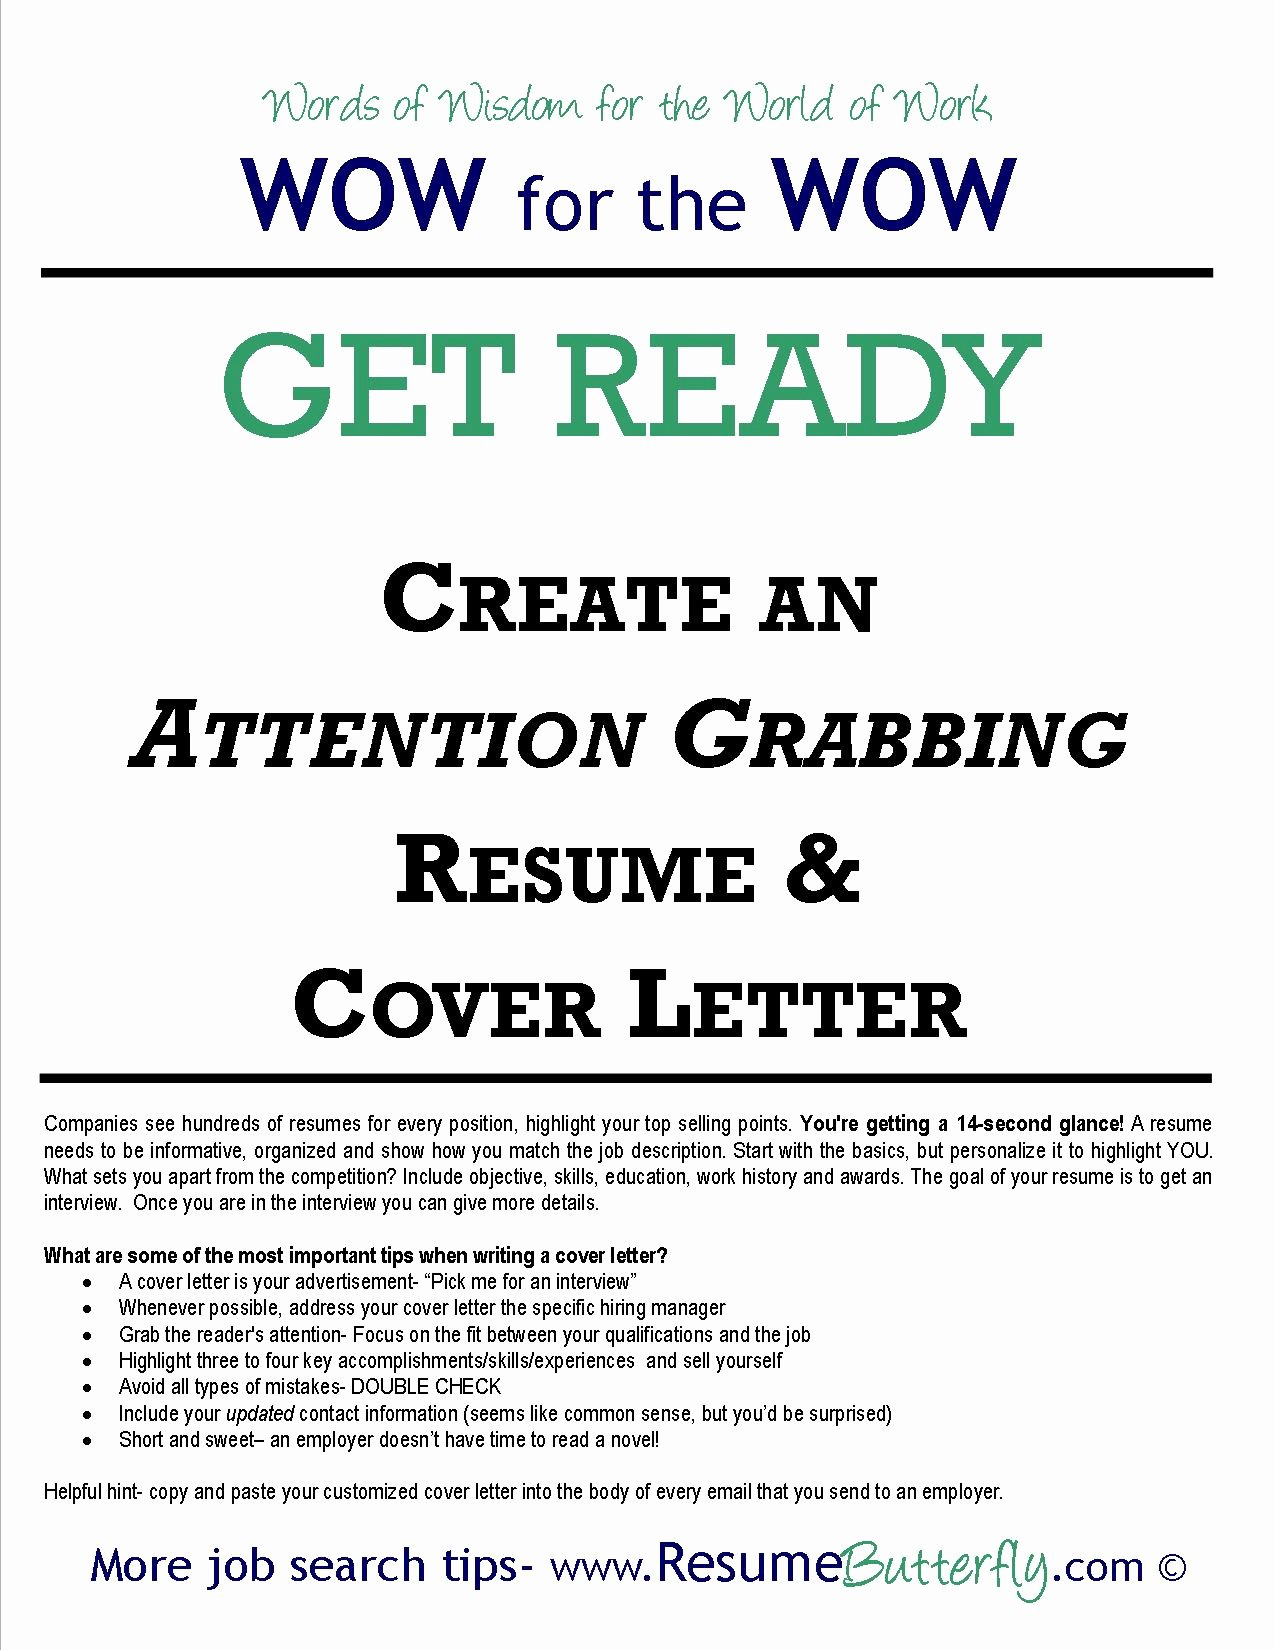 Email Resume Cover Letter Awesome Create An attention Grabbing Resume & Cover Letter